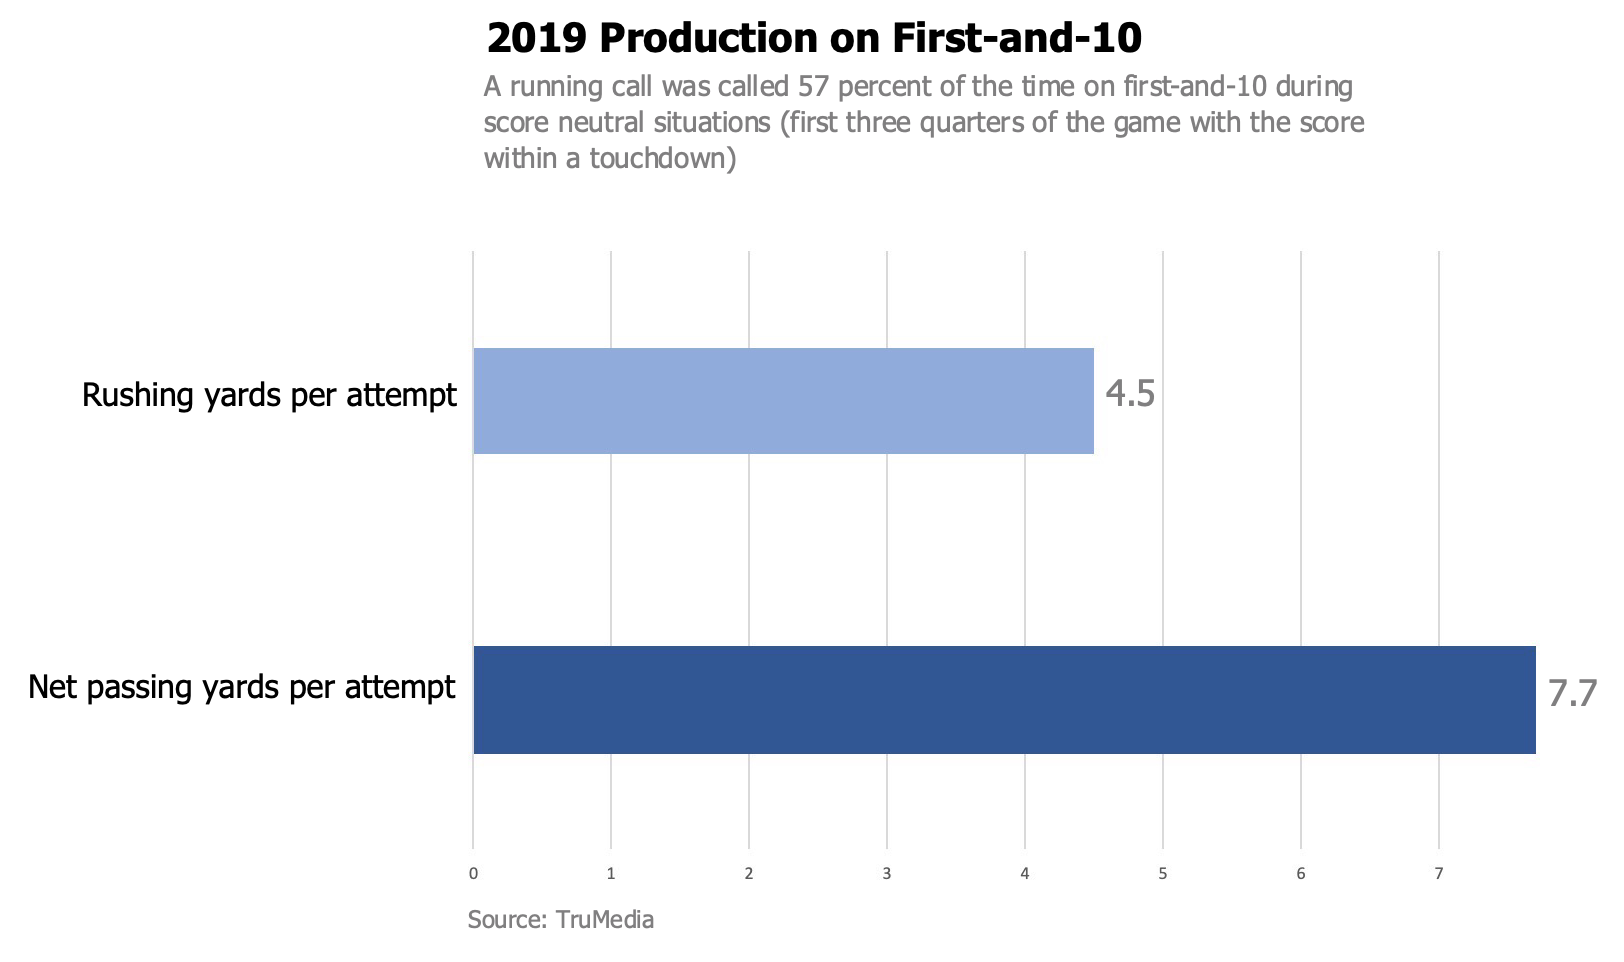 2019 Production on 1st and 10